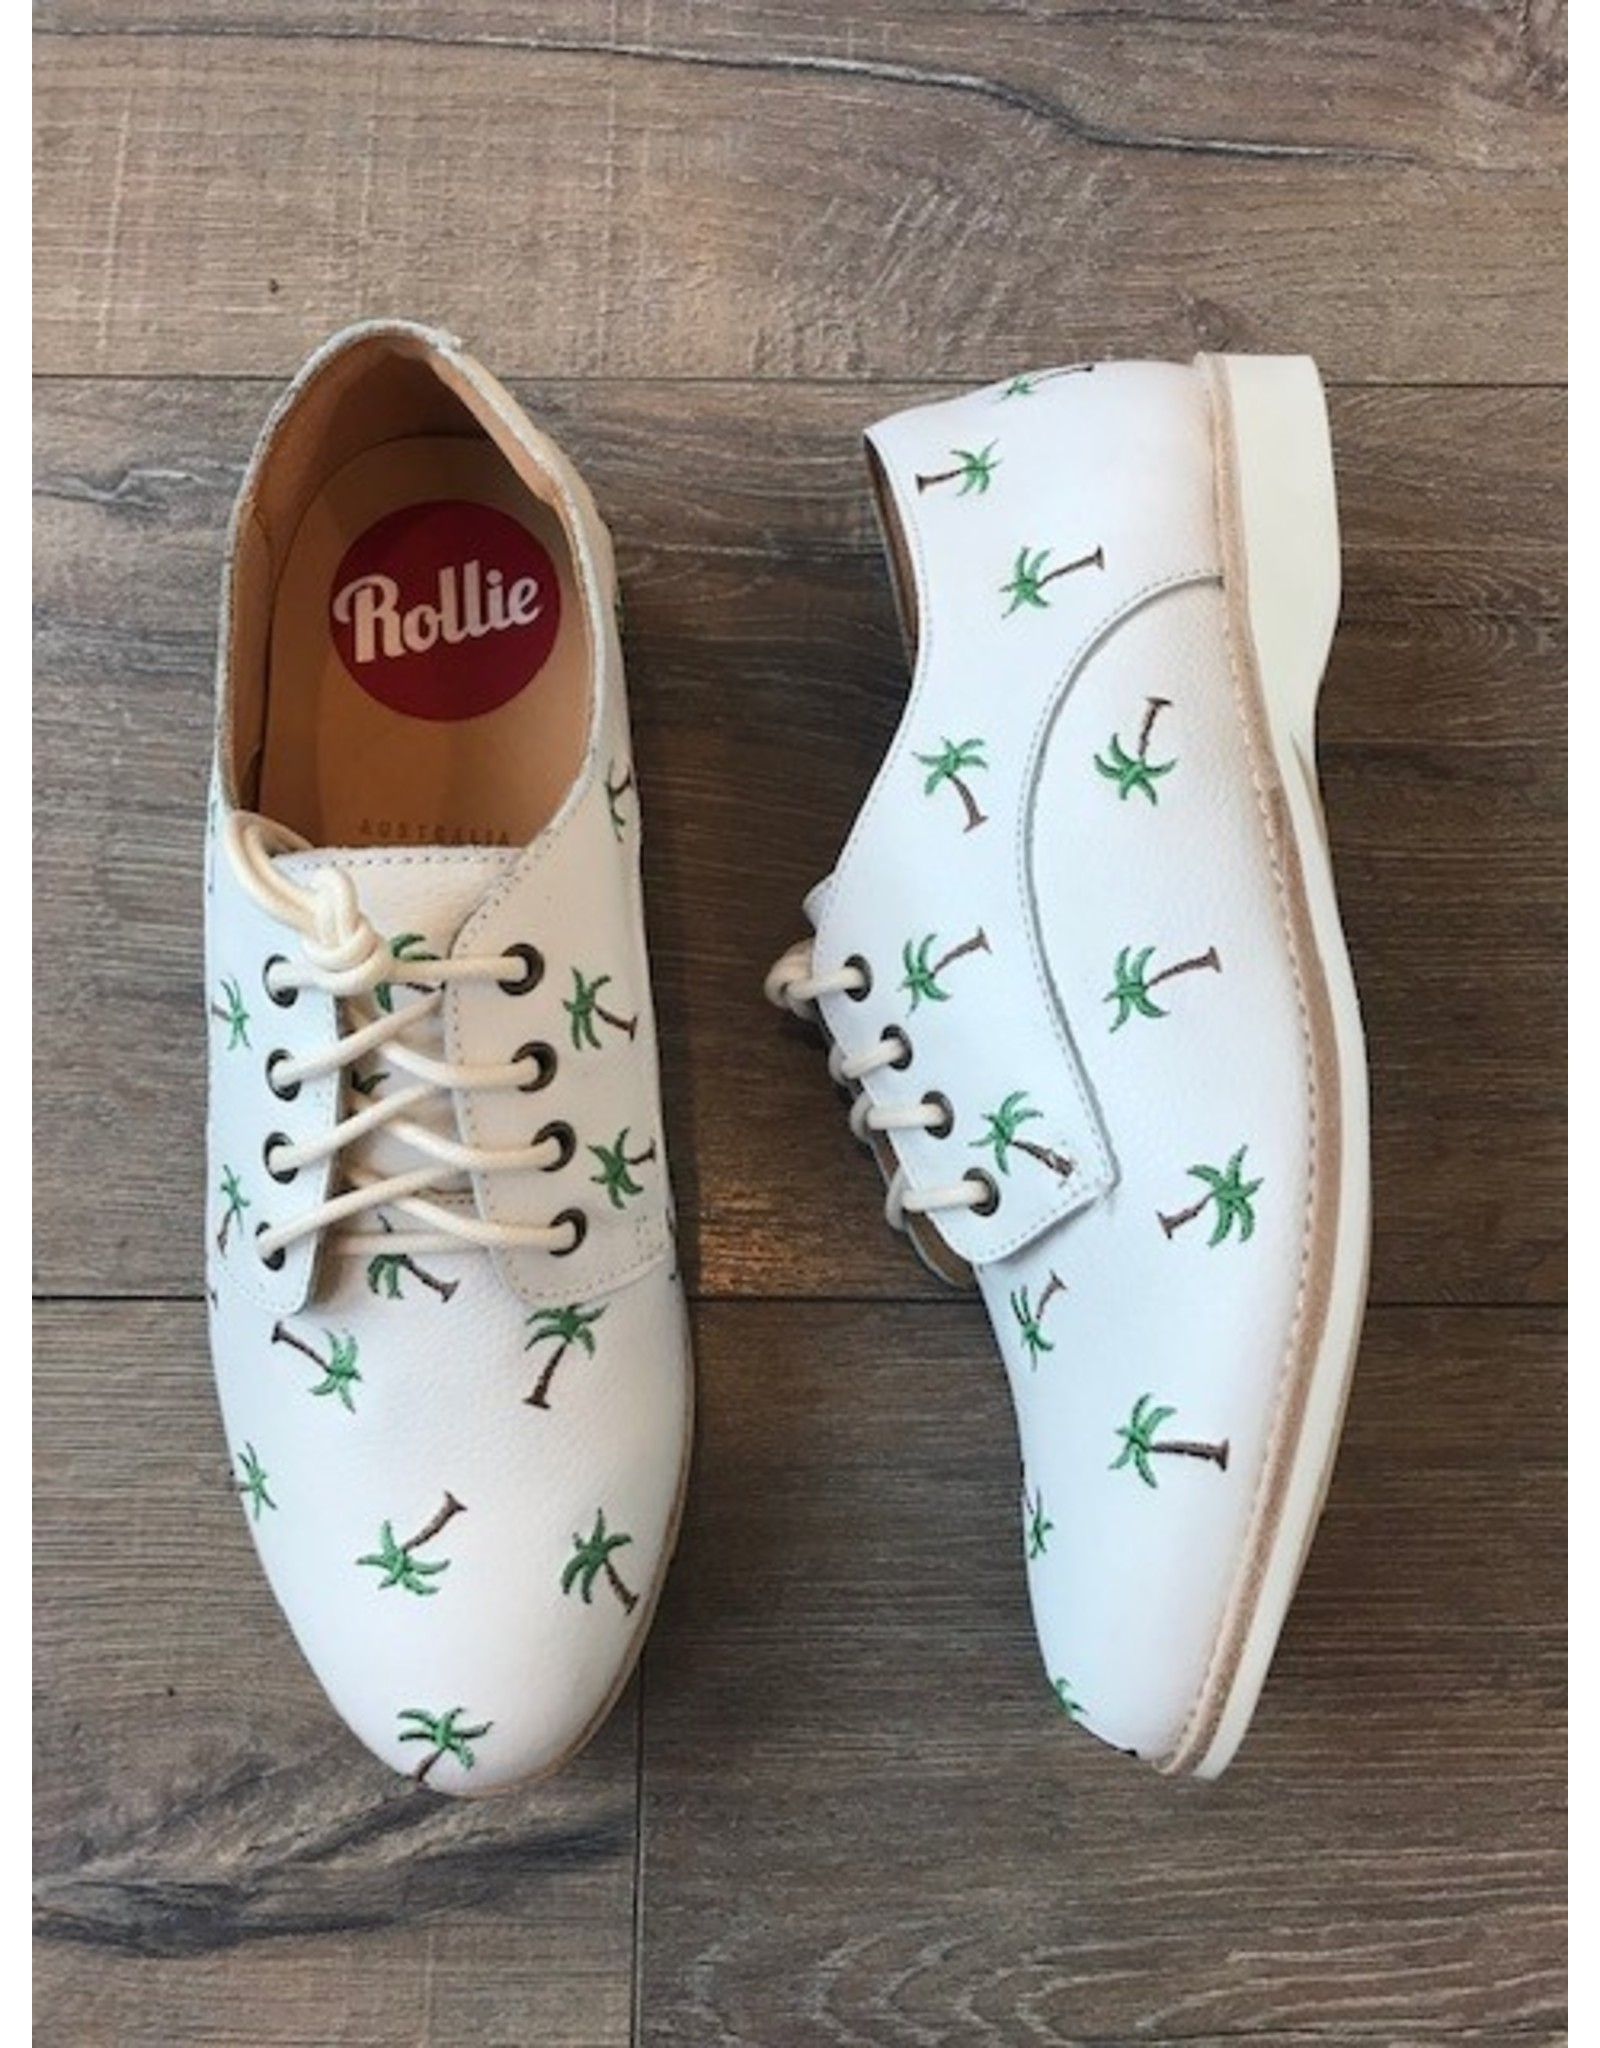 Rollie Shoes Rollie - Derby print (Rodeo Drive)